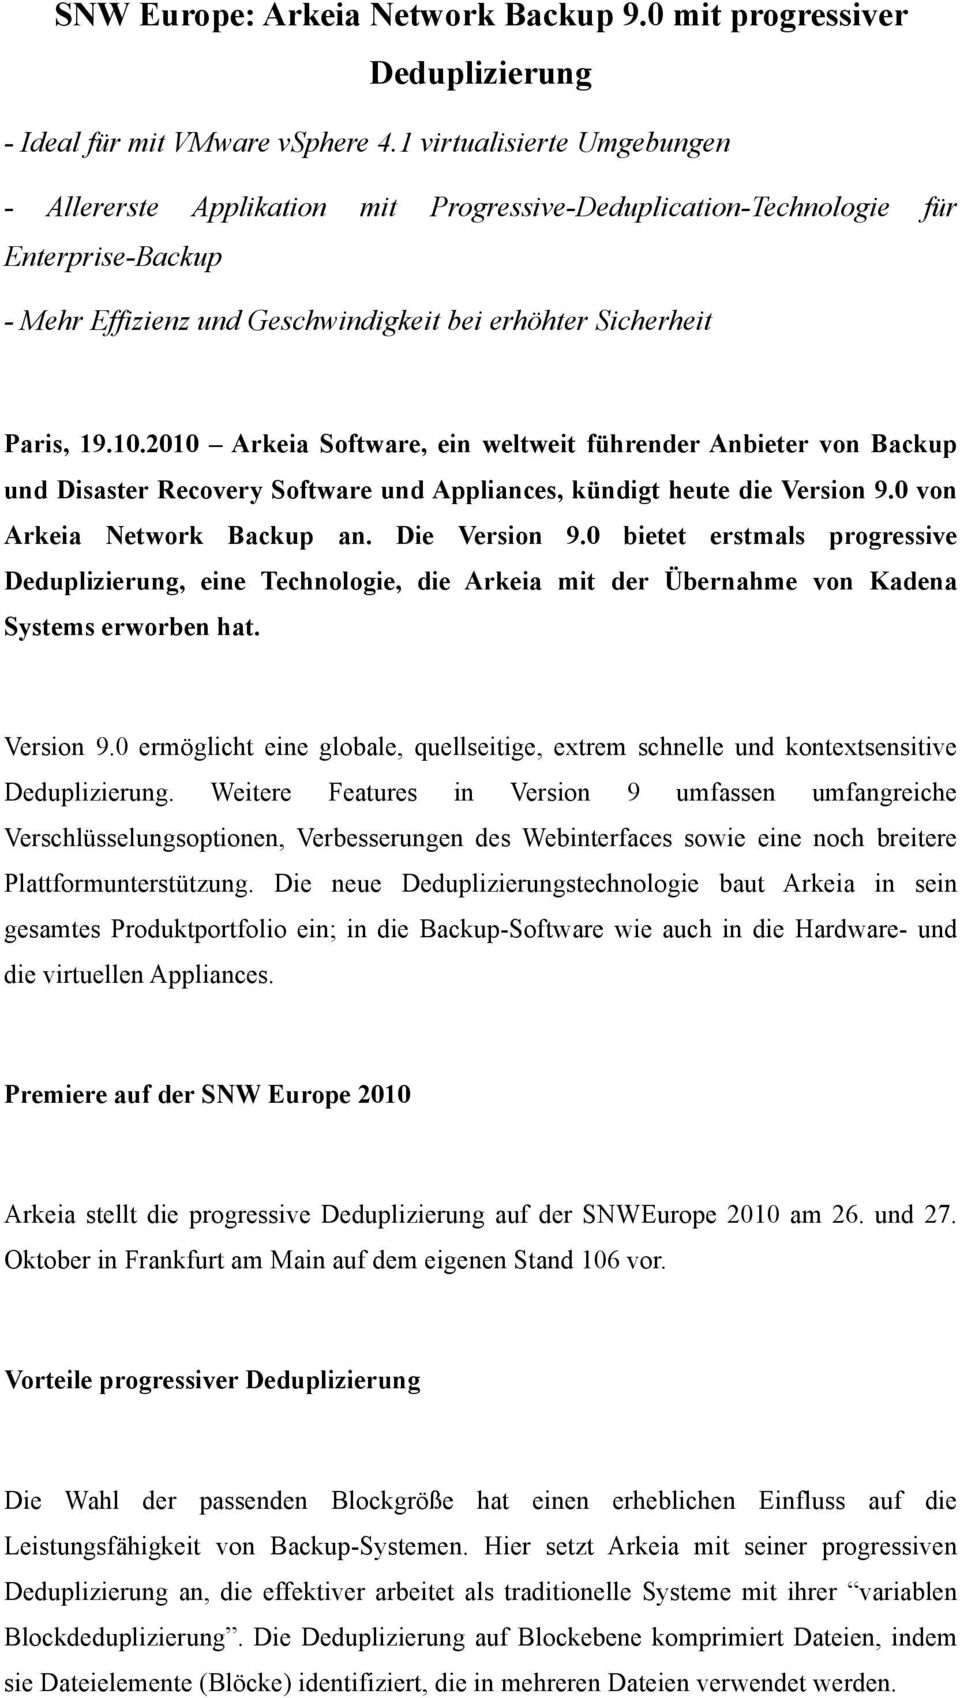 2010 Arkeia Software, ein weltweit führender Anbieter von Backup und Disaster Recovery Software und Appliances, kündigt heute die Version 9.0 von Arkeia Network Backup an. Die Version 9.